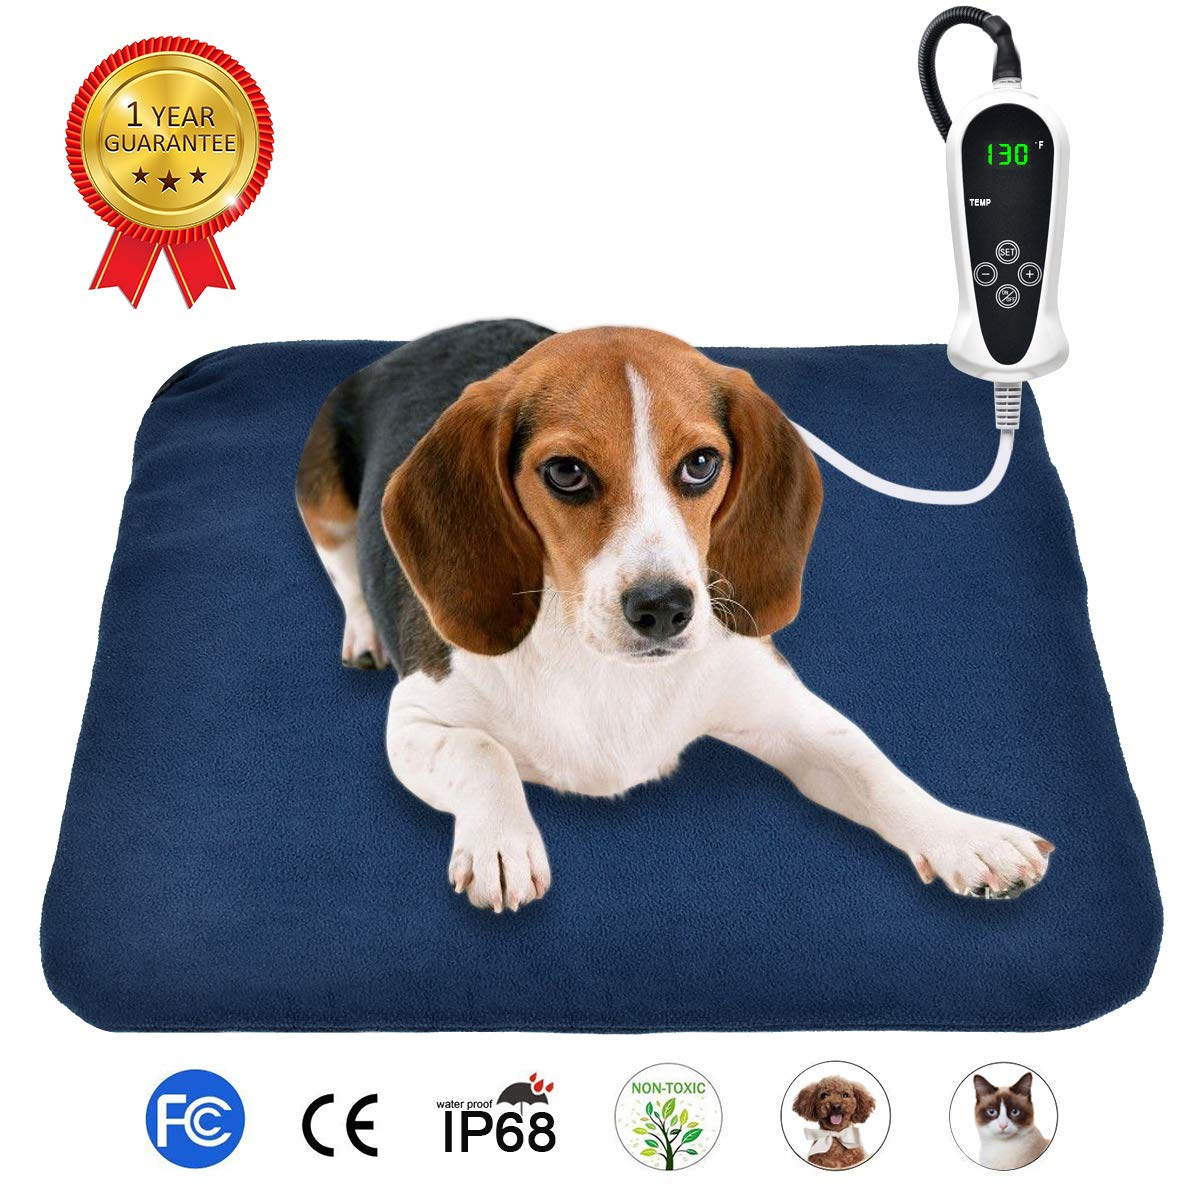 RIOGOO Pet Heating Pad, Electric Heating Pad for Dogs and Cats Indoor Warming Mat with Auto Power Off 18'' x 18'' by RIOGOO